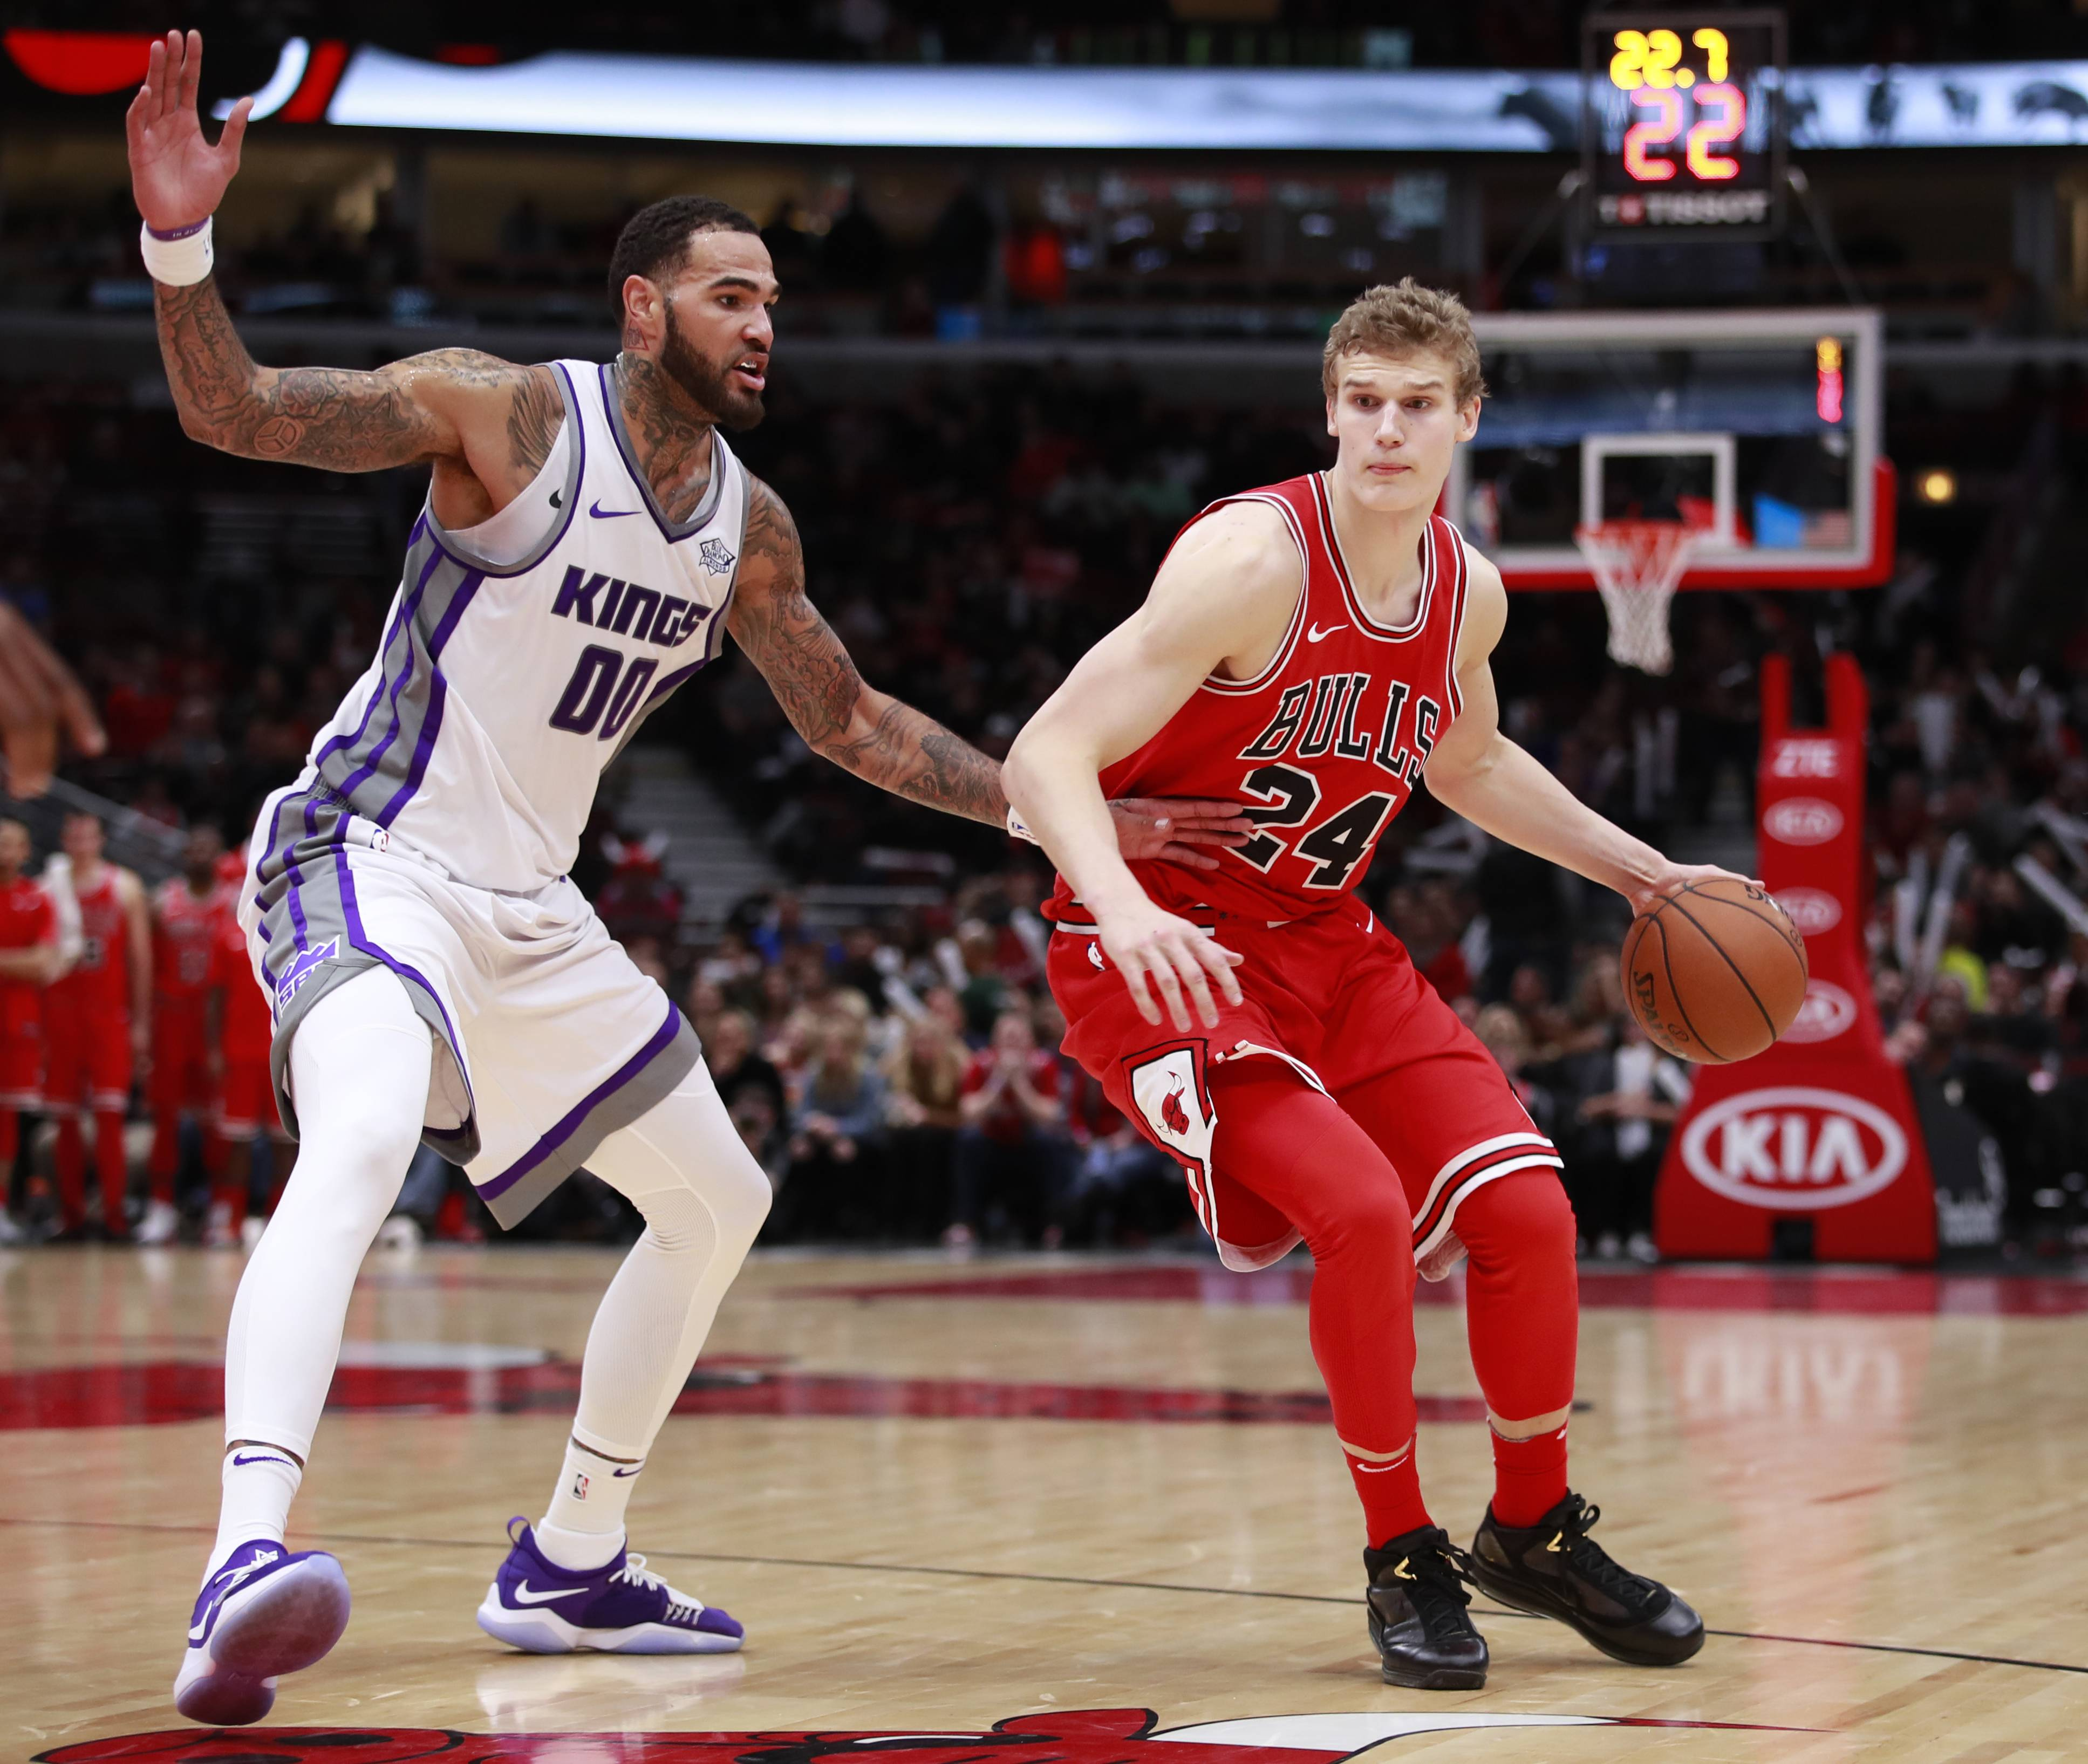 Chicago Bulls forward Lauri Markkanen has seen some extended playing time late in games, which isn't typical for rookies. Though his performances aren't always the best, Markkanen says playing late gives him the chance to learn from his own mistakes.